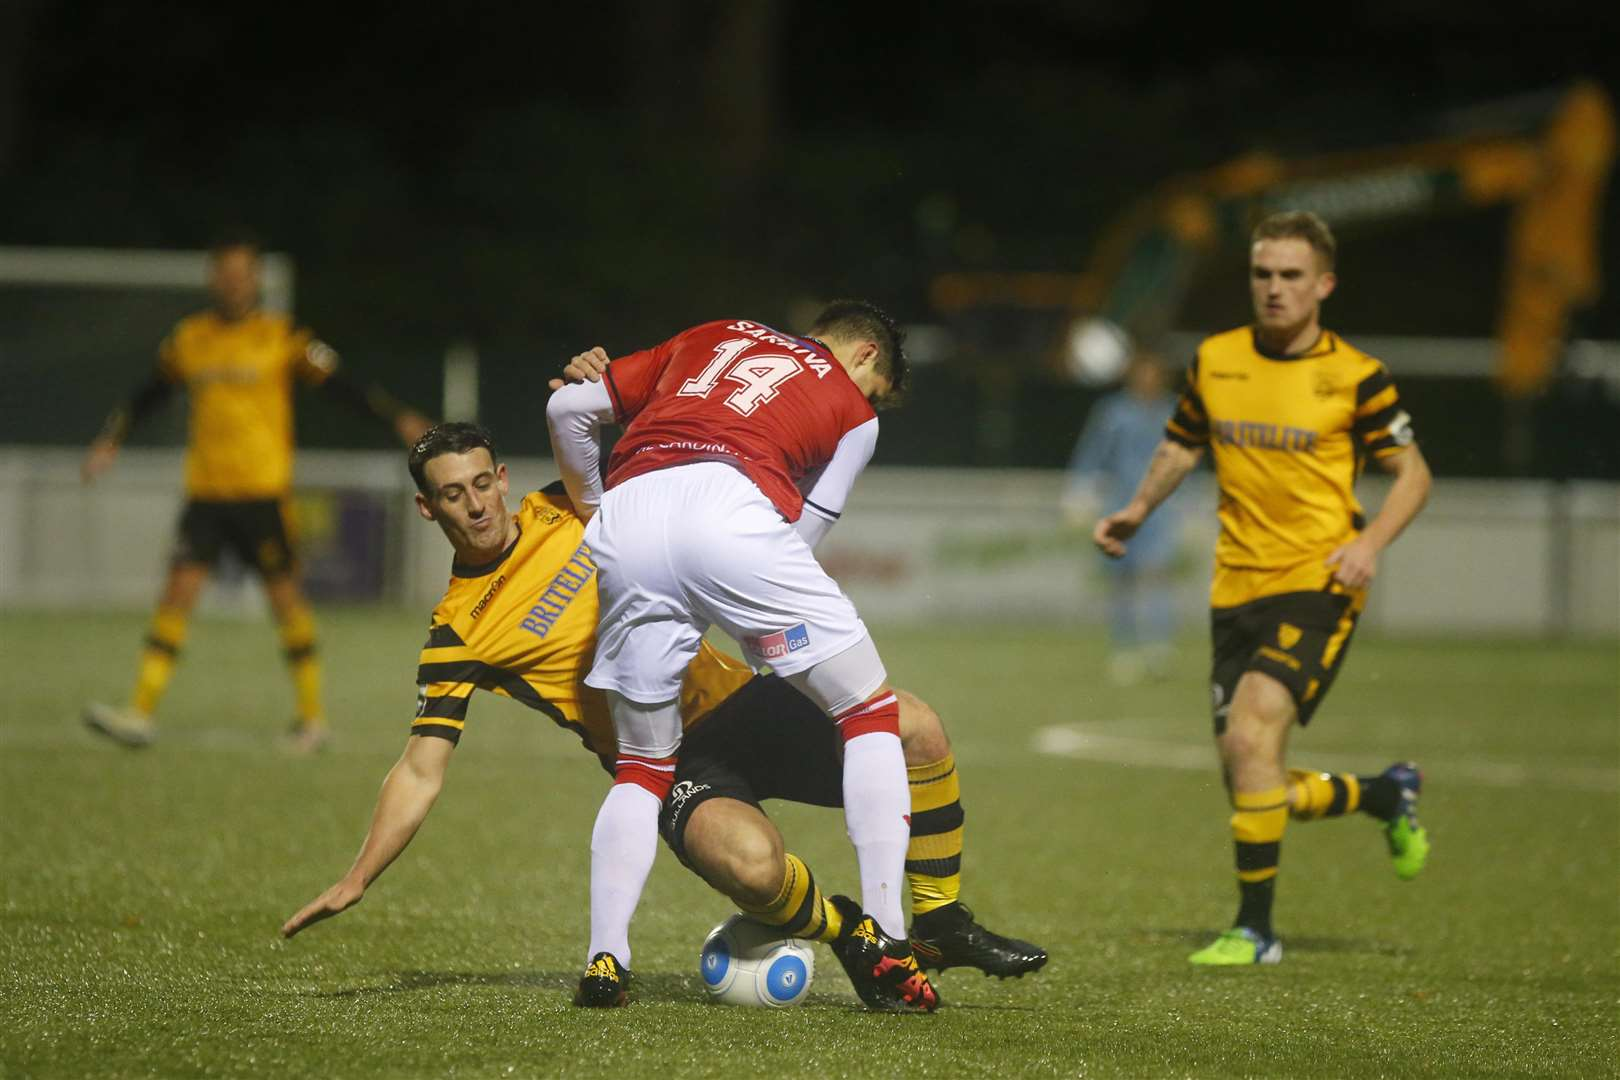 Callum Driver made an impression on Jamie Coyle during their days at Maidstone Picture: Andy Jones